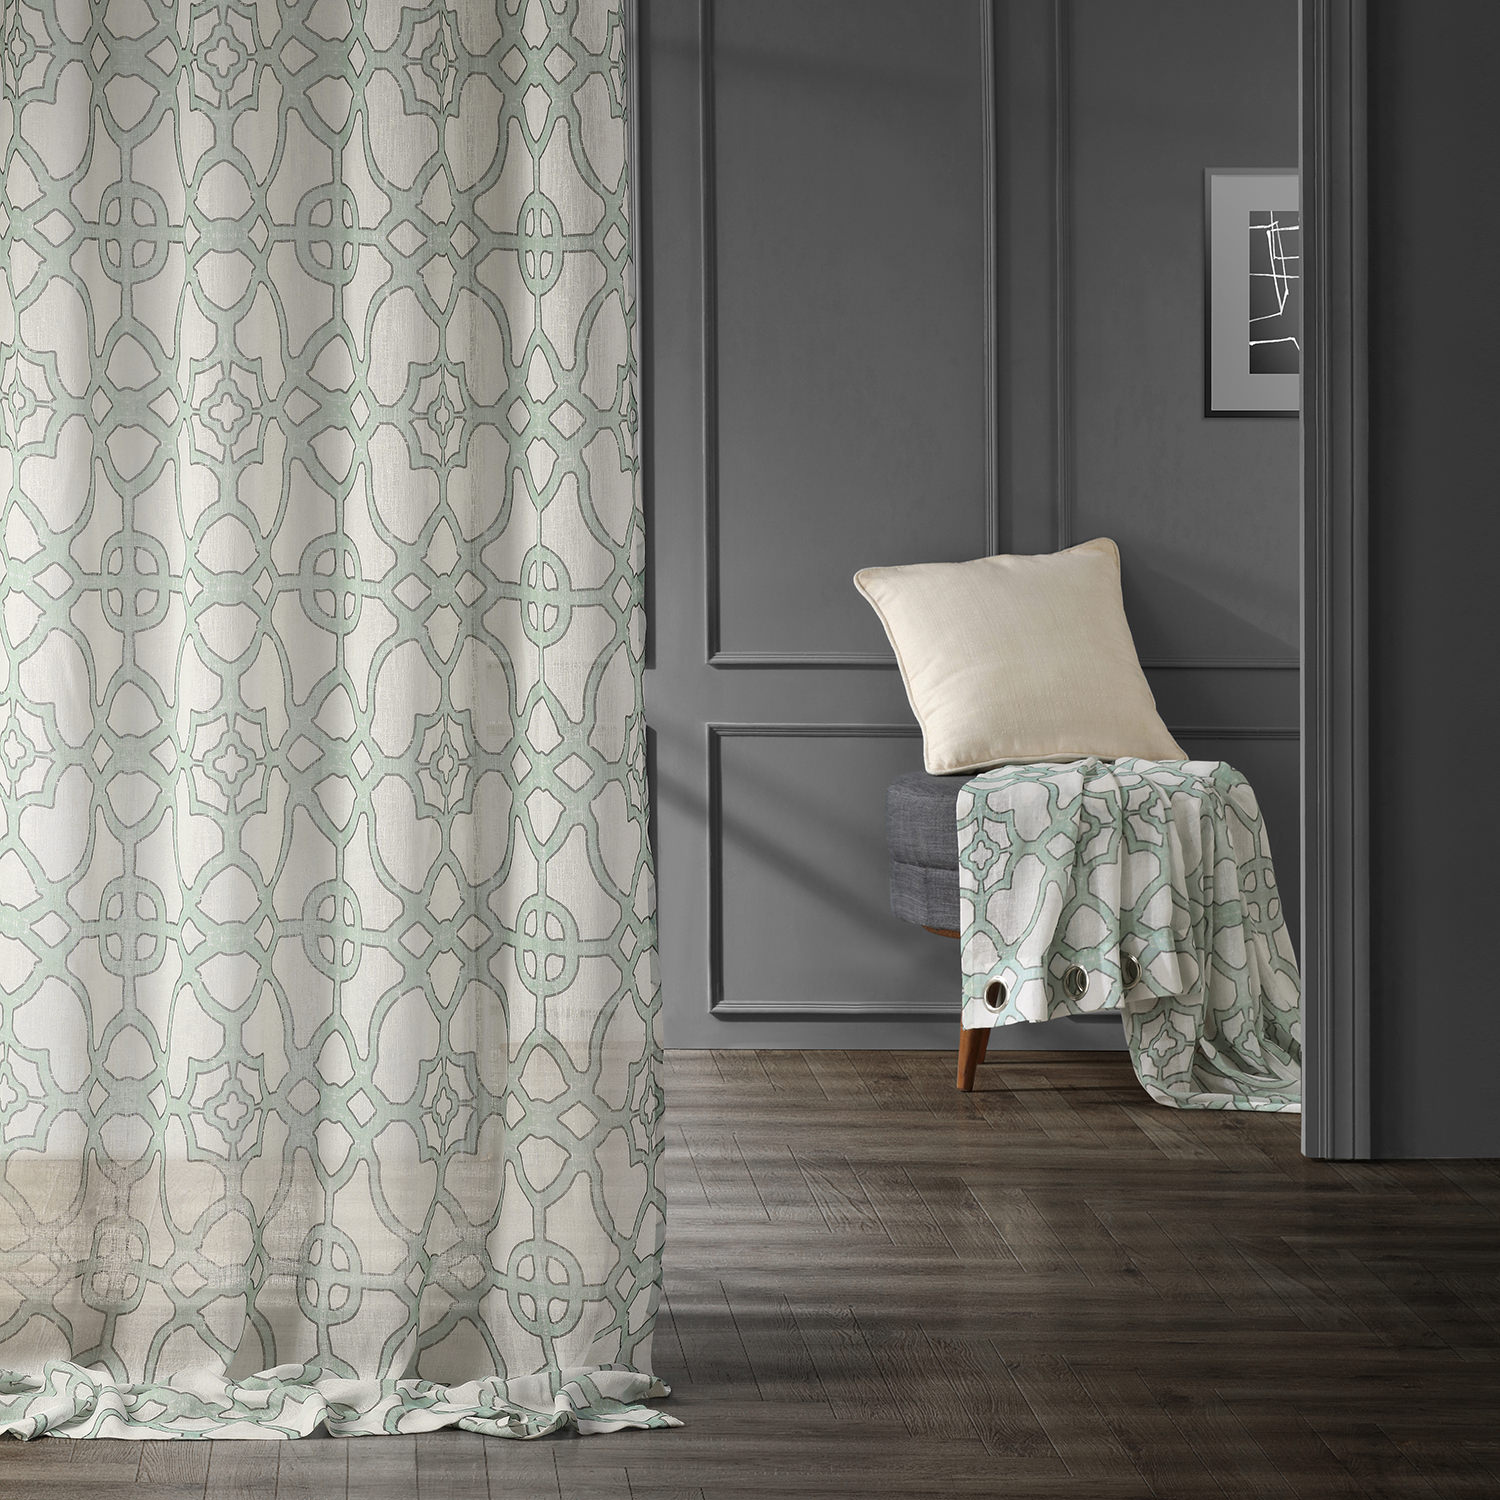 SeaGlass Blue Grommet Printed Sheer Curtain